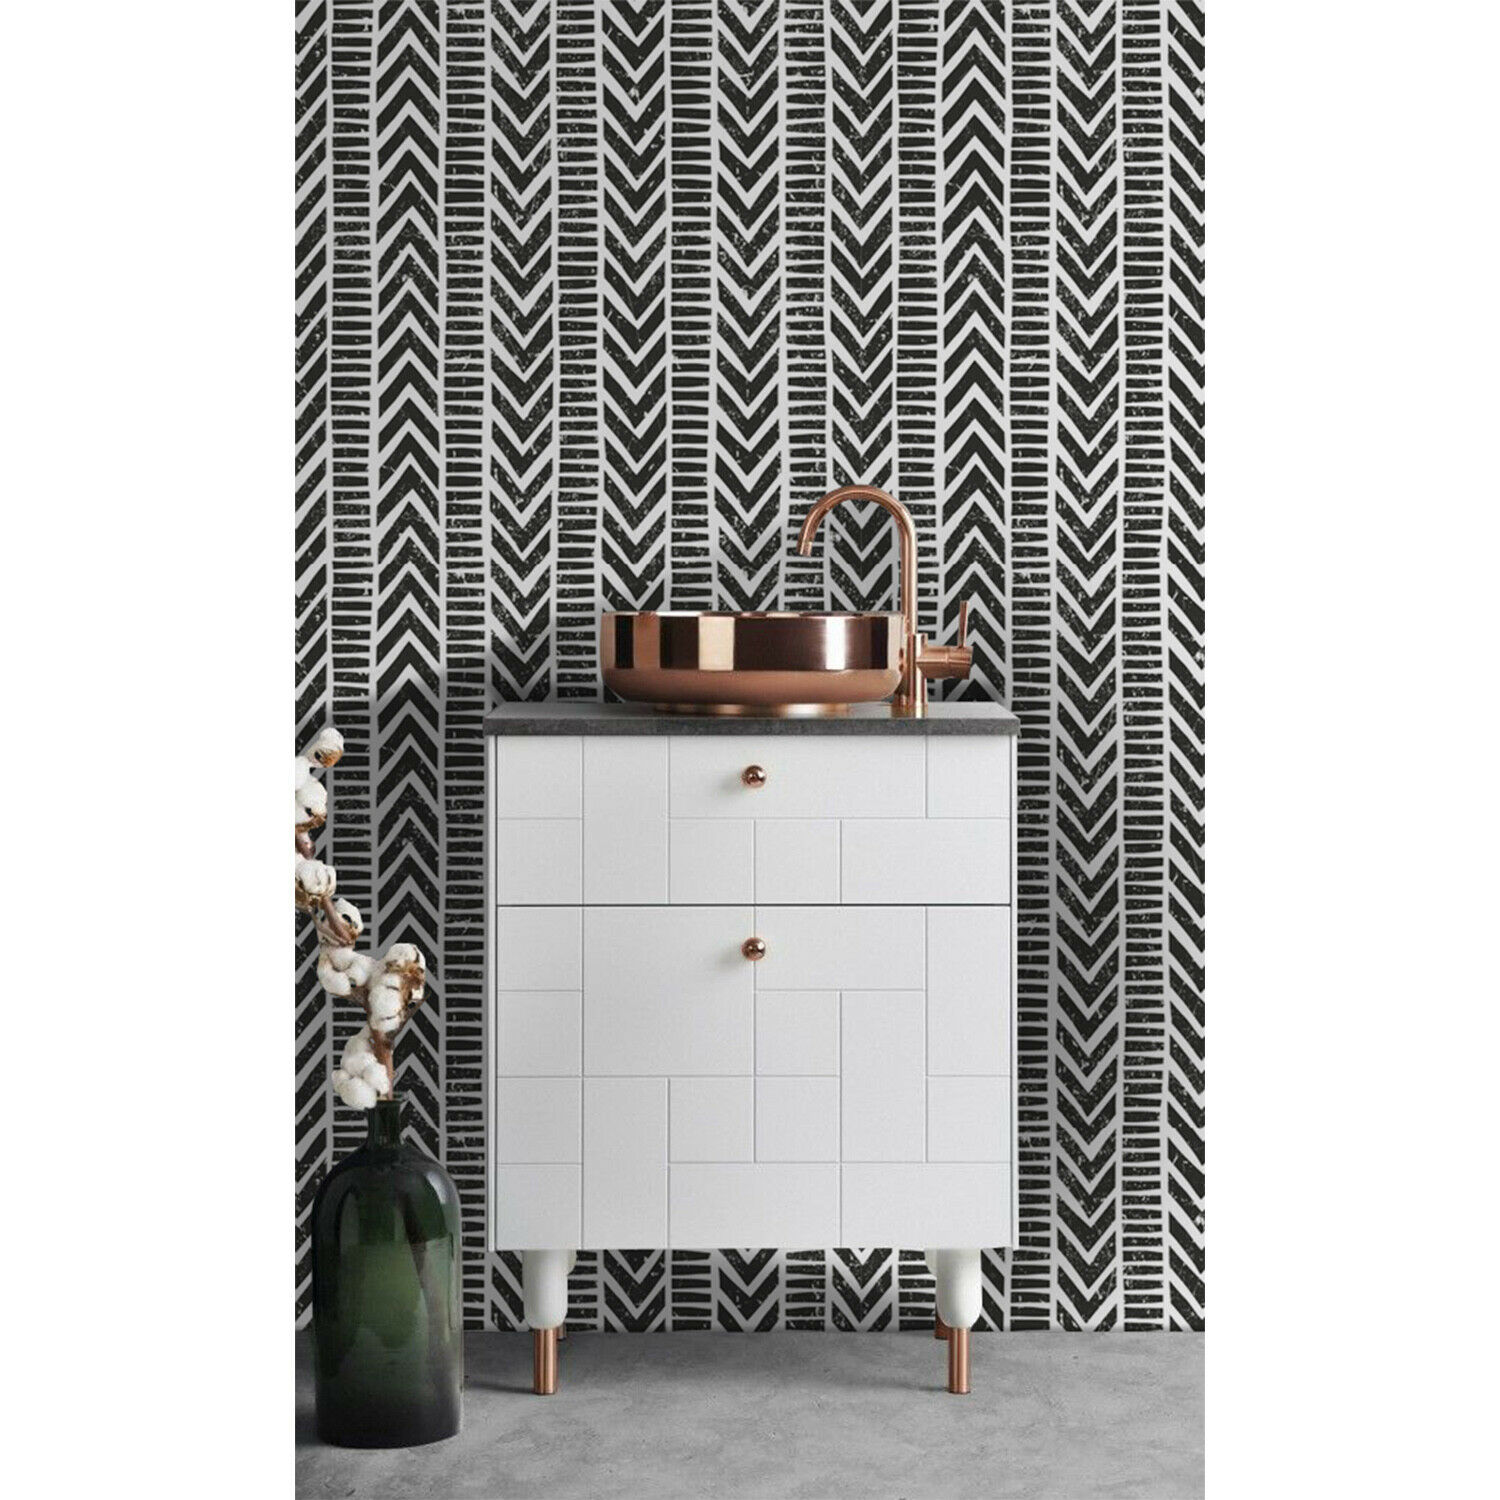 Tribal Pattern Non-Woven Wallpaper roll Geometric wall mural Simple Home decor